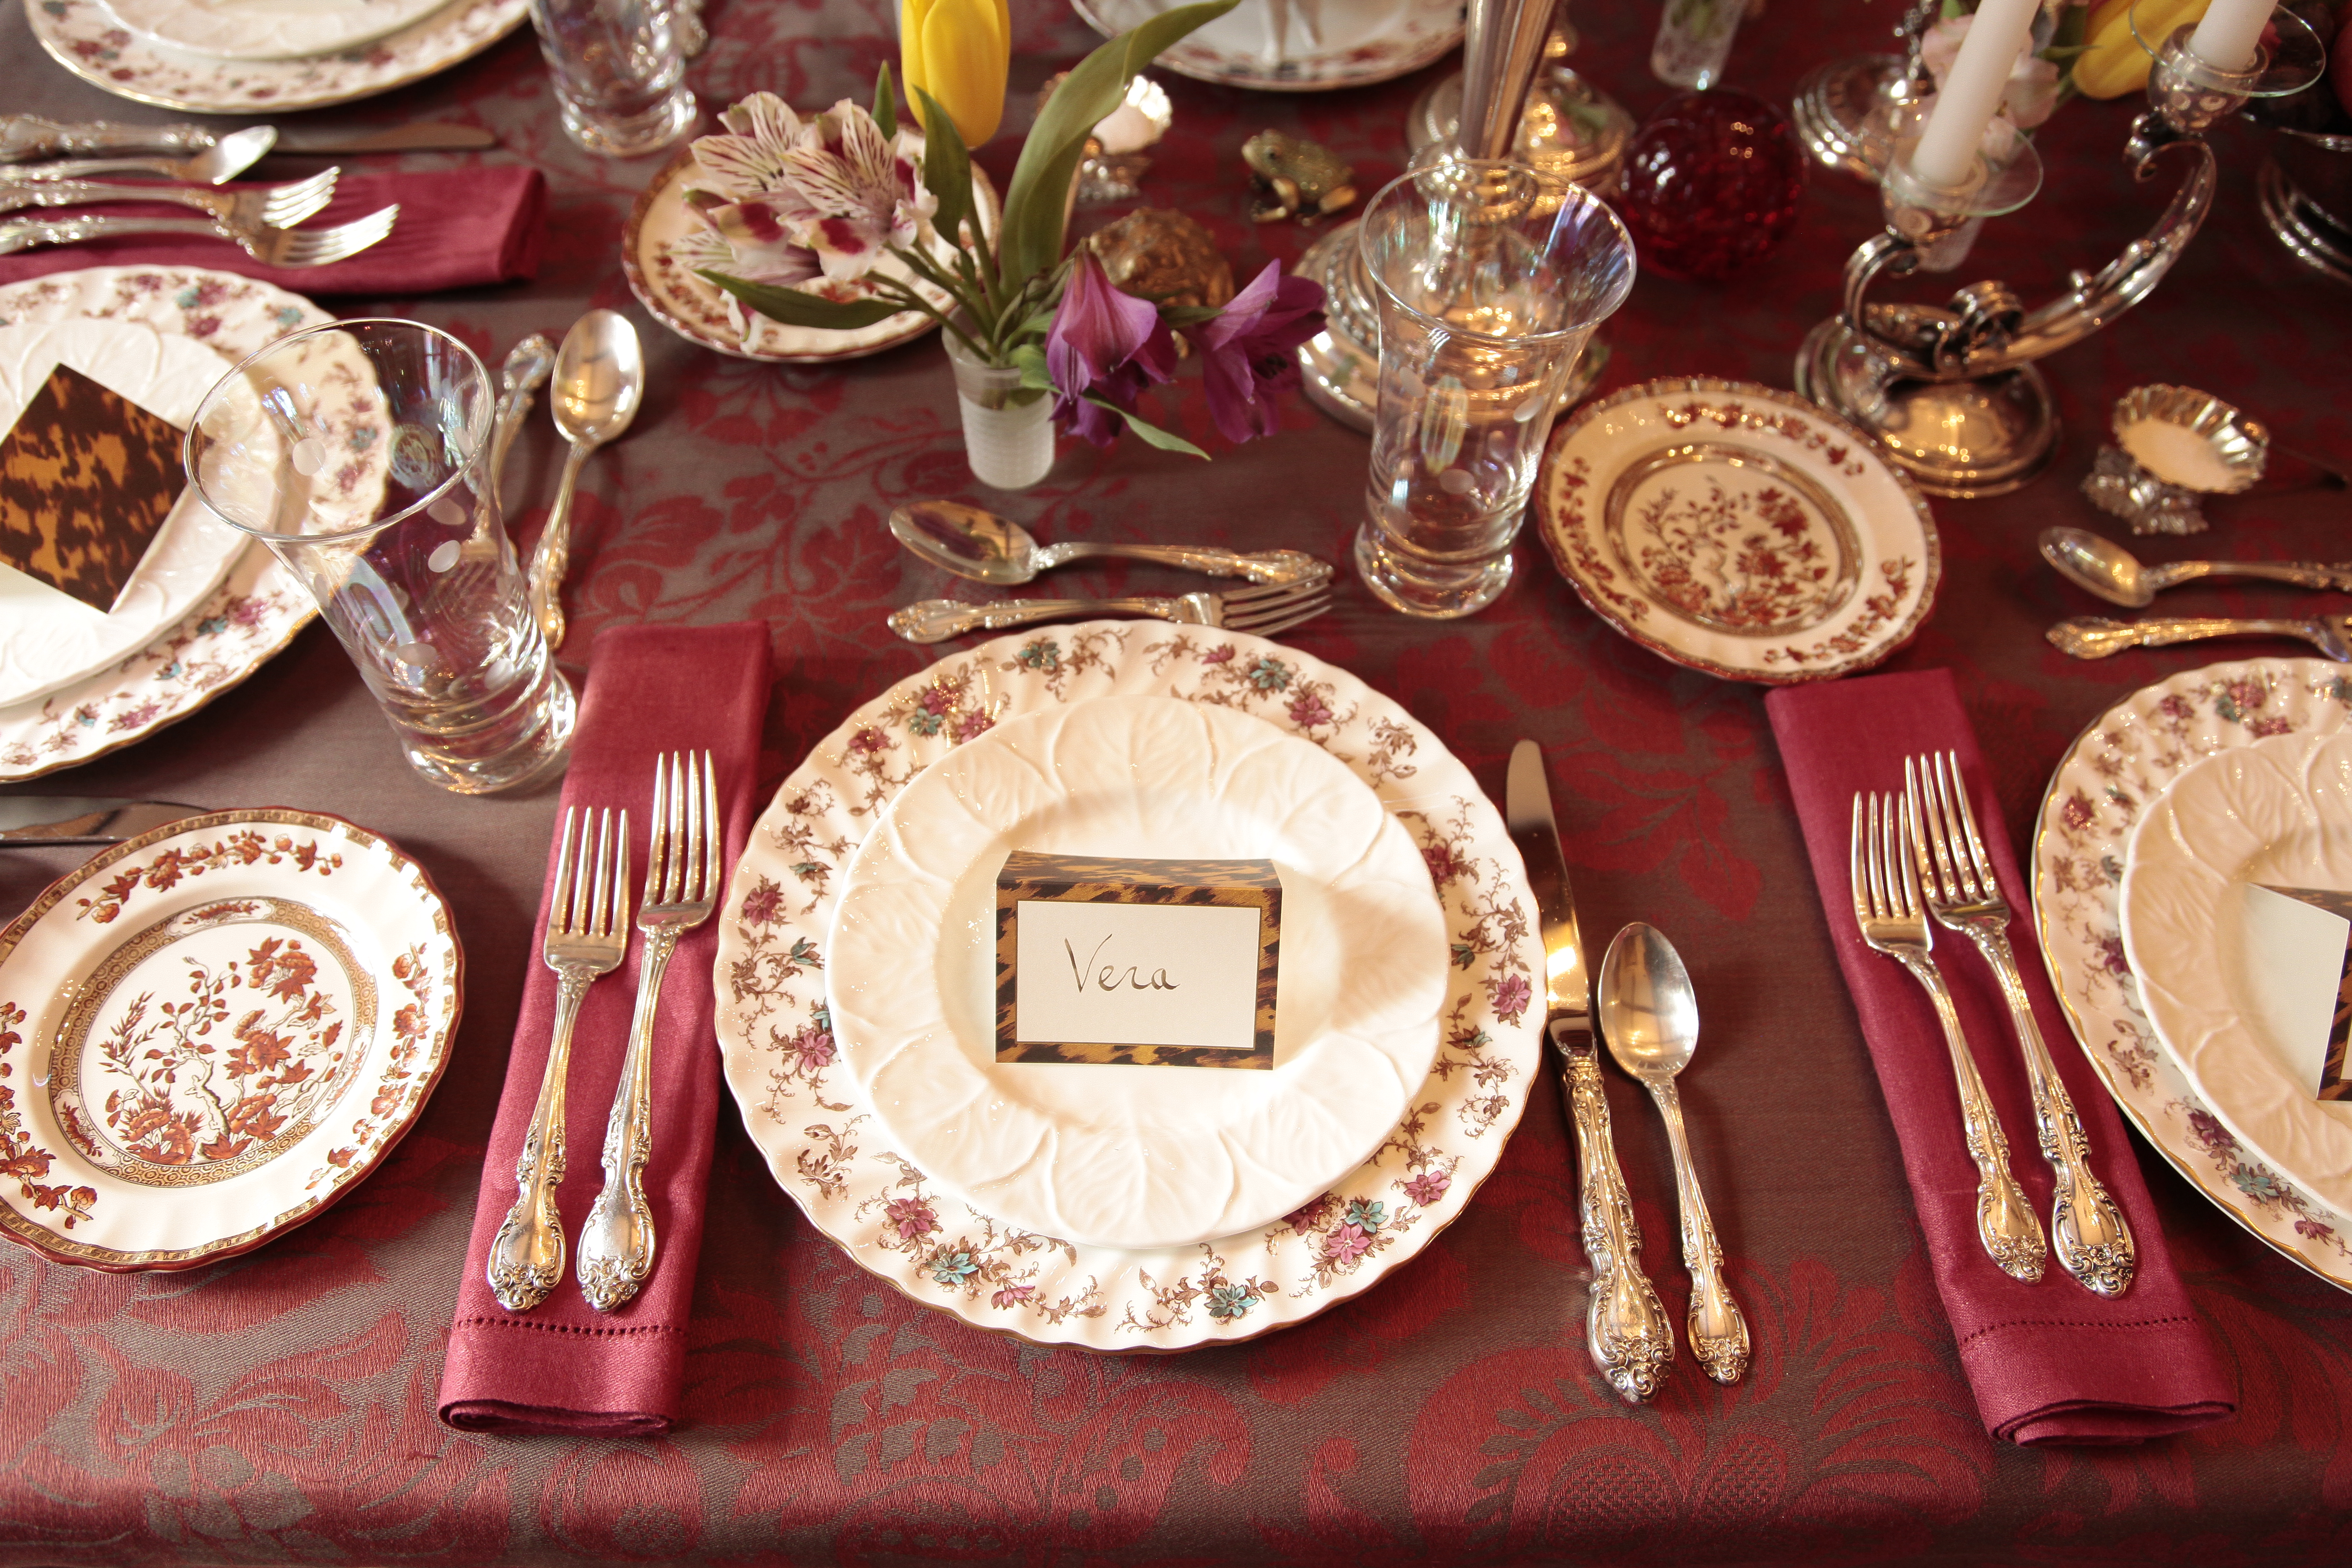 For Thanksgiving, I wanted an elegant, somewhat formal table setting.